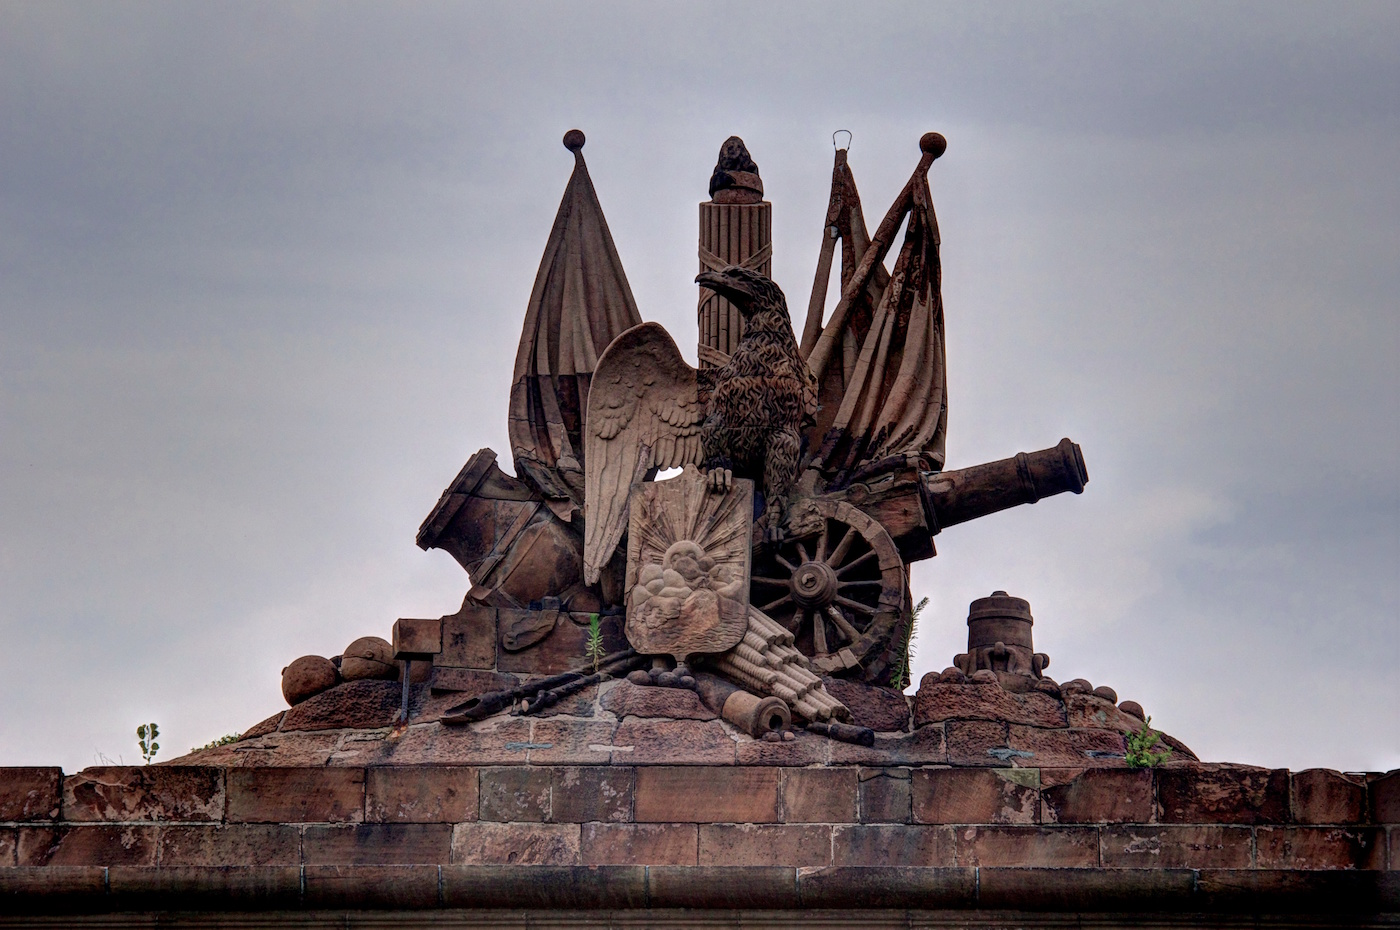 The eagle sculpture on Fort Jay in 2012, prior to Hurricane Sandy (photo by Mike Peel/Wikimedia)